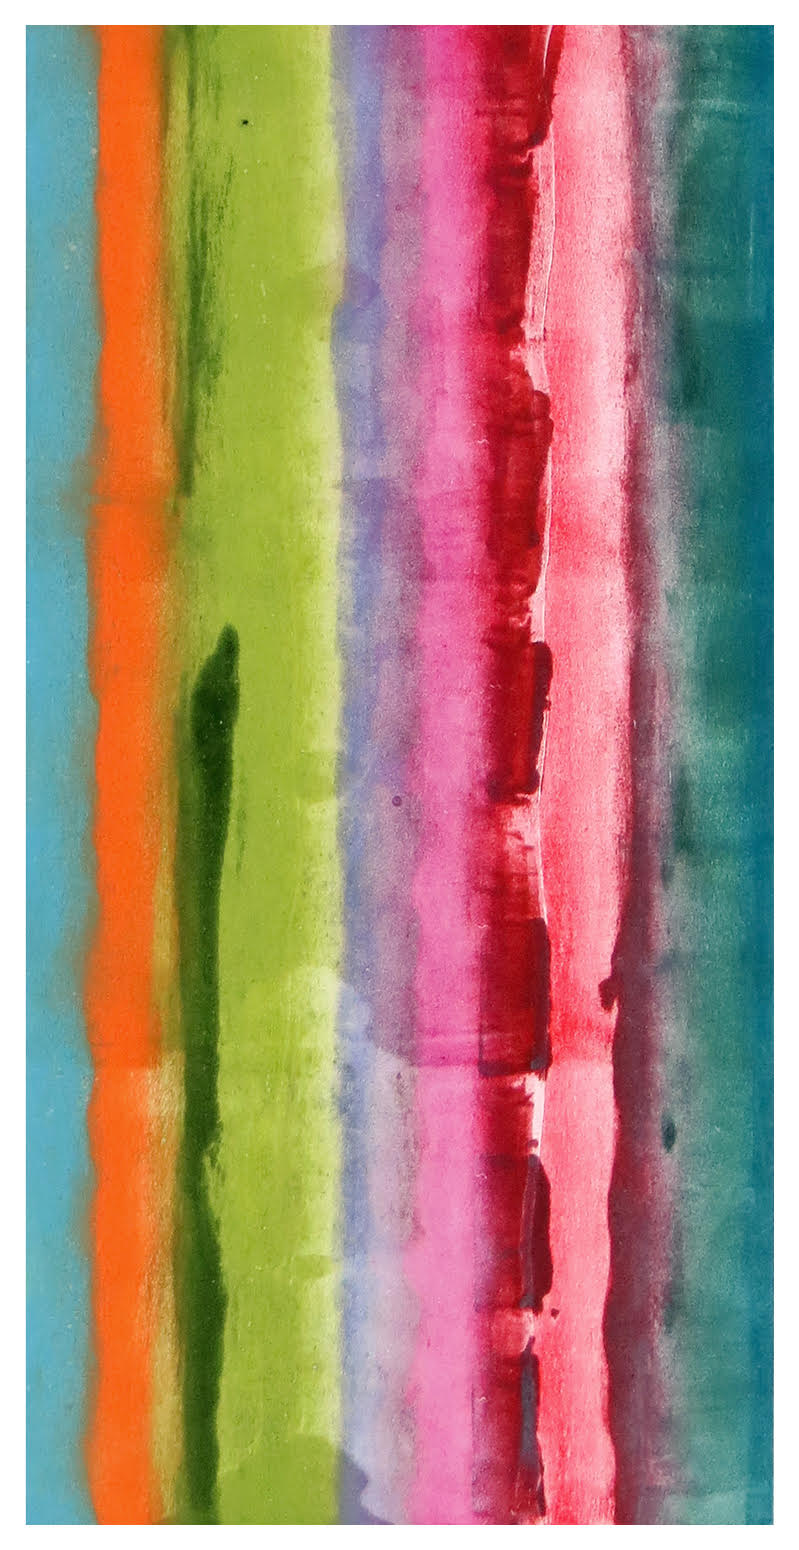 Anne Russell  -  Rose Campion 2  -  monotype, soy based ink on rag paper  -  24 x 14 framed  -  $475